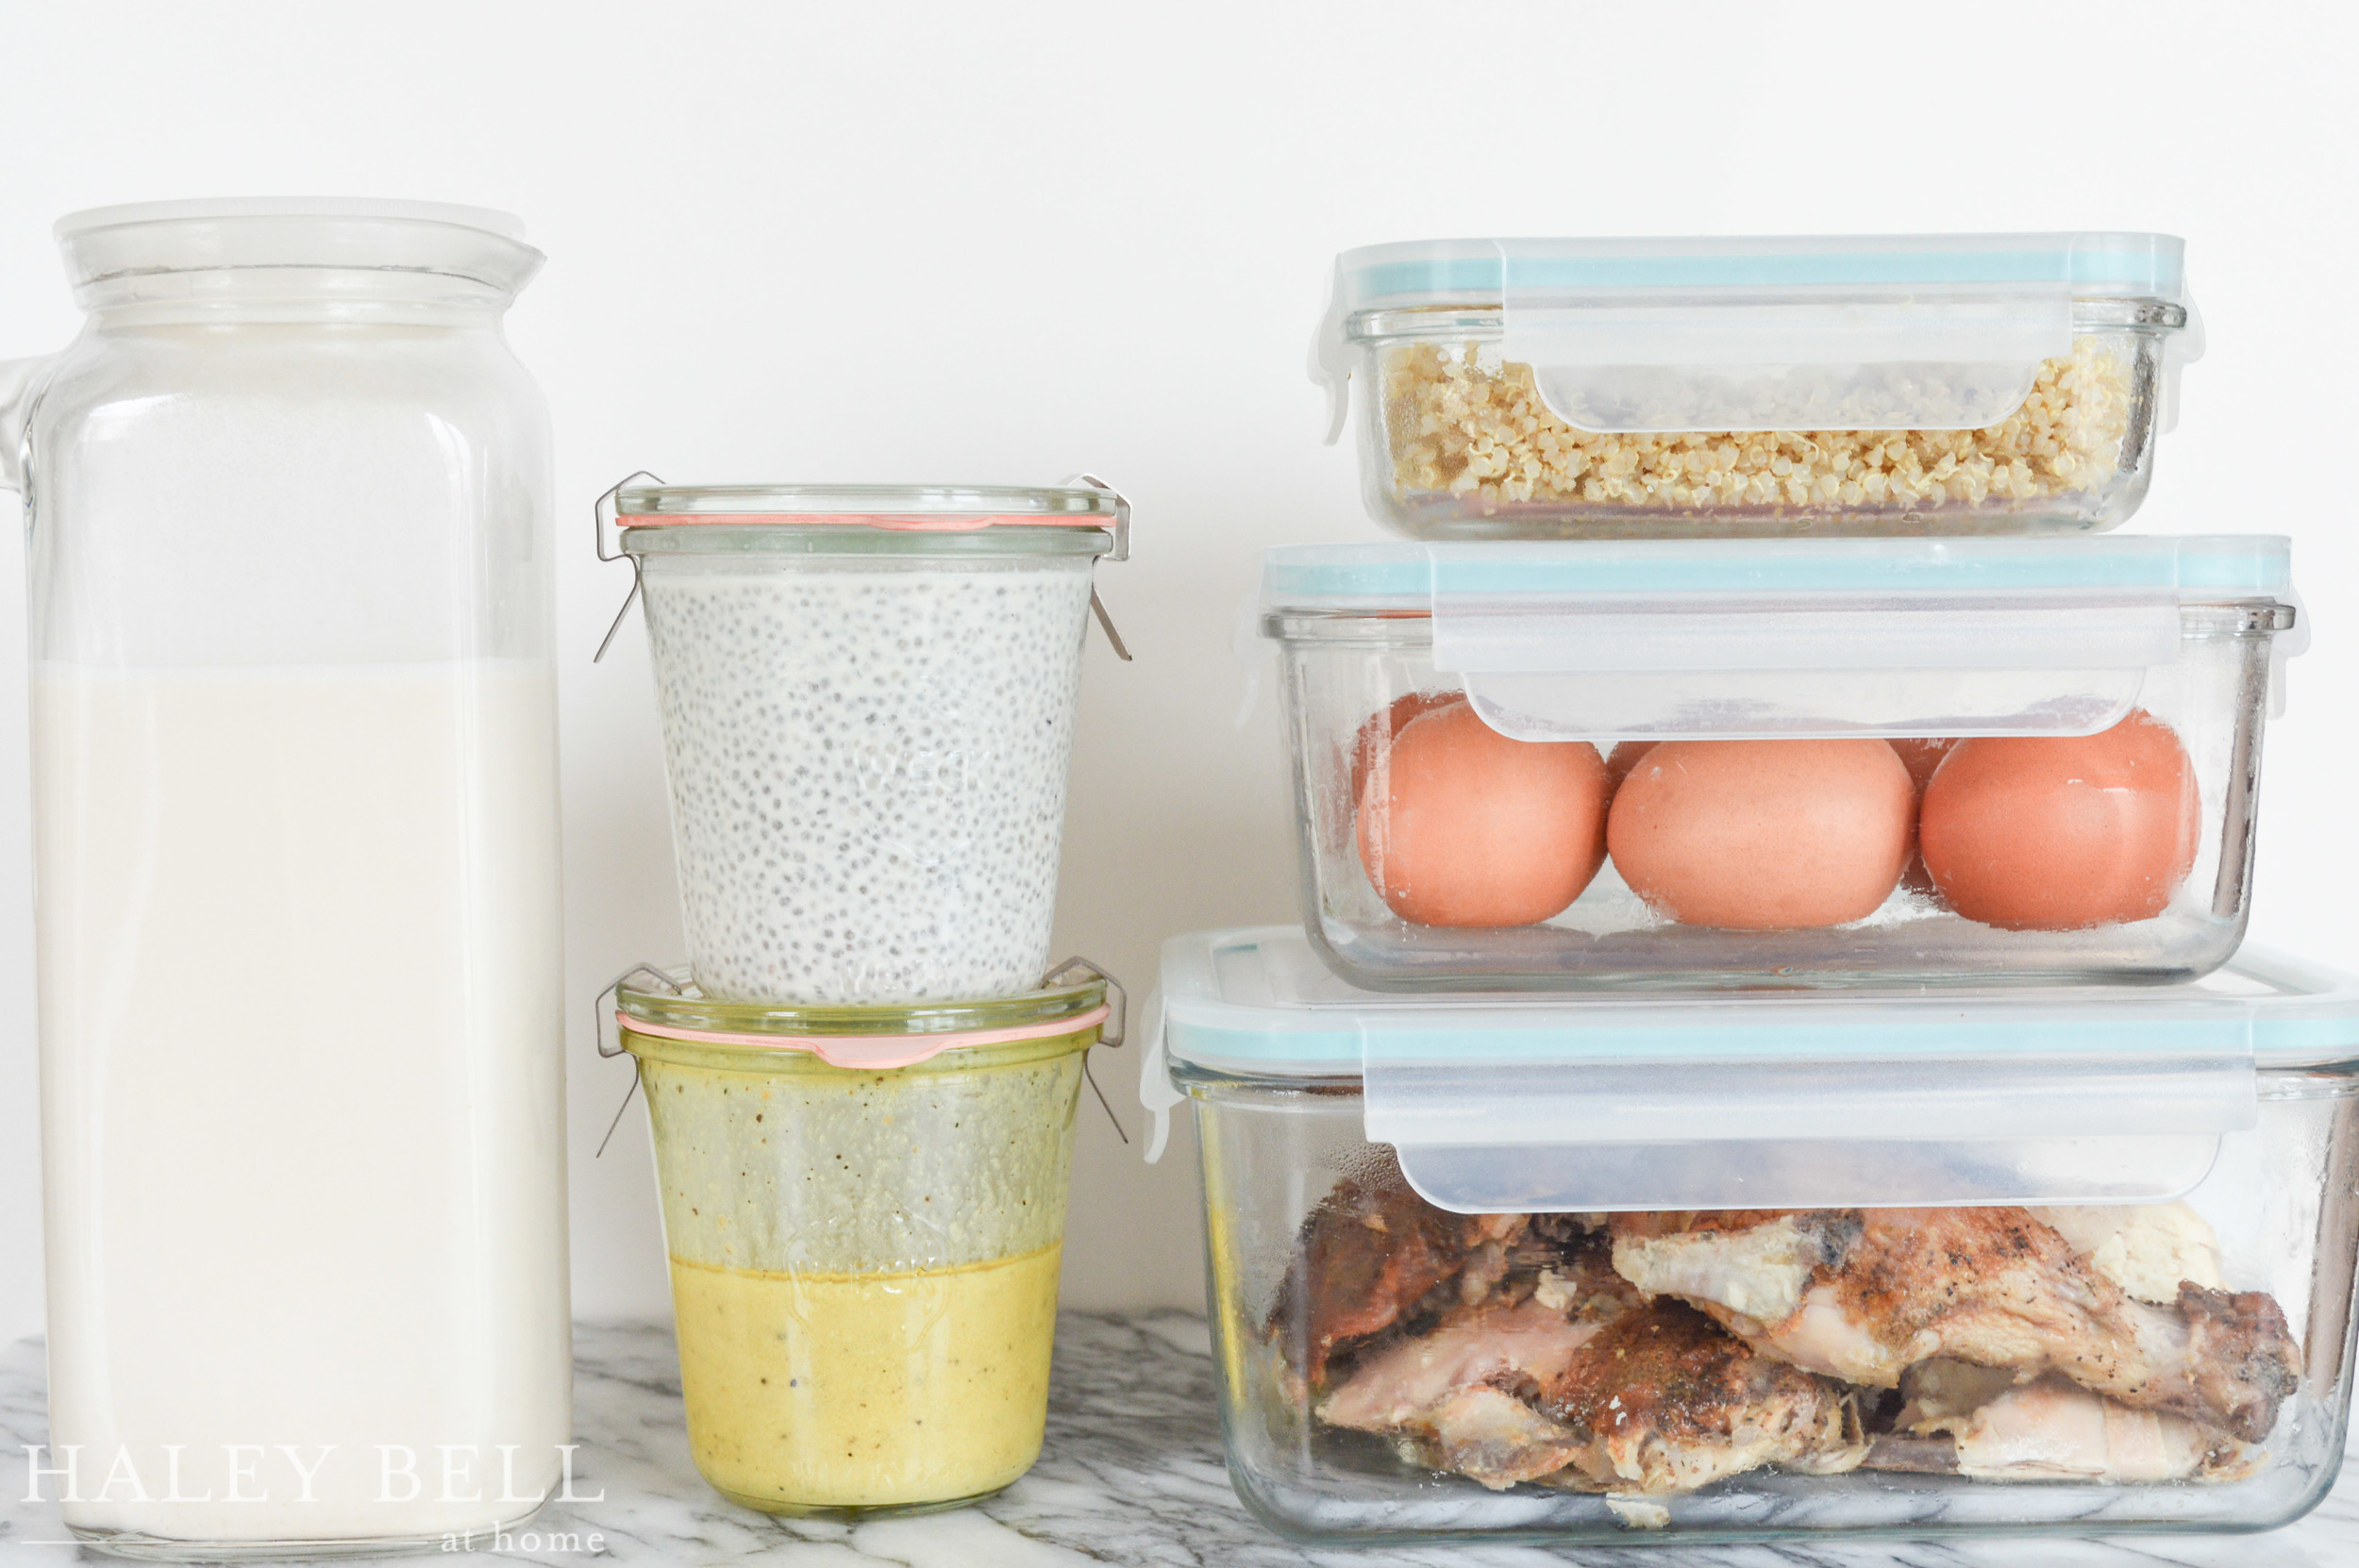 {Almond Milk, Chia Seed Pudding, Salad Dressing, Quinoa, Eggs and Poultry}